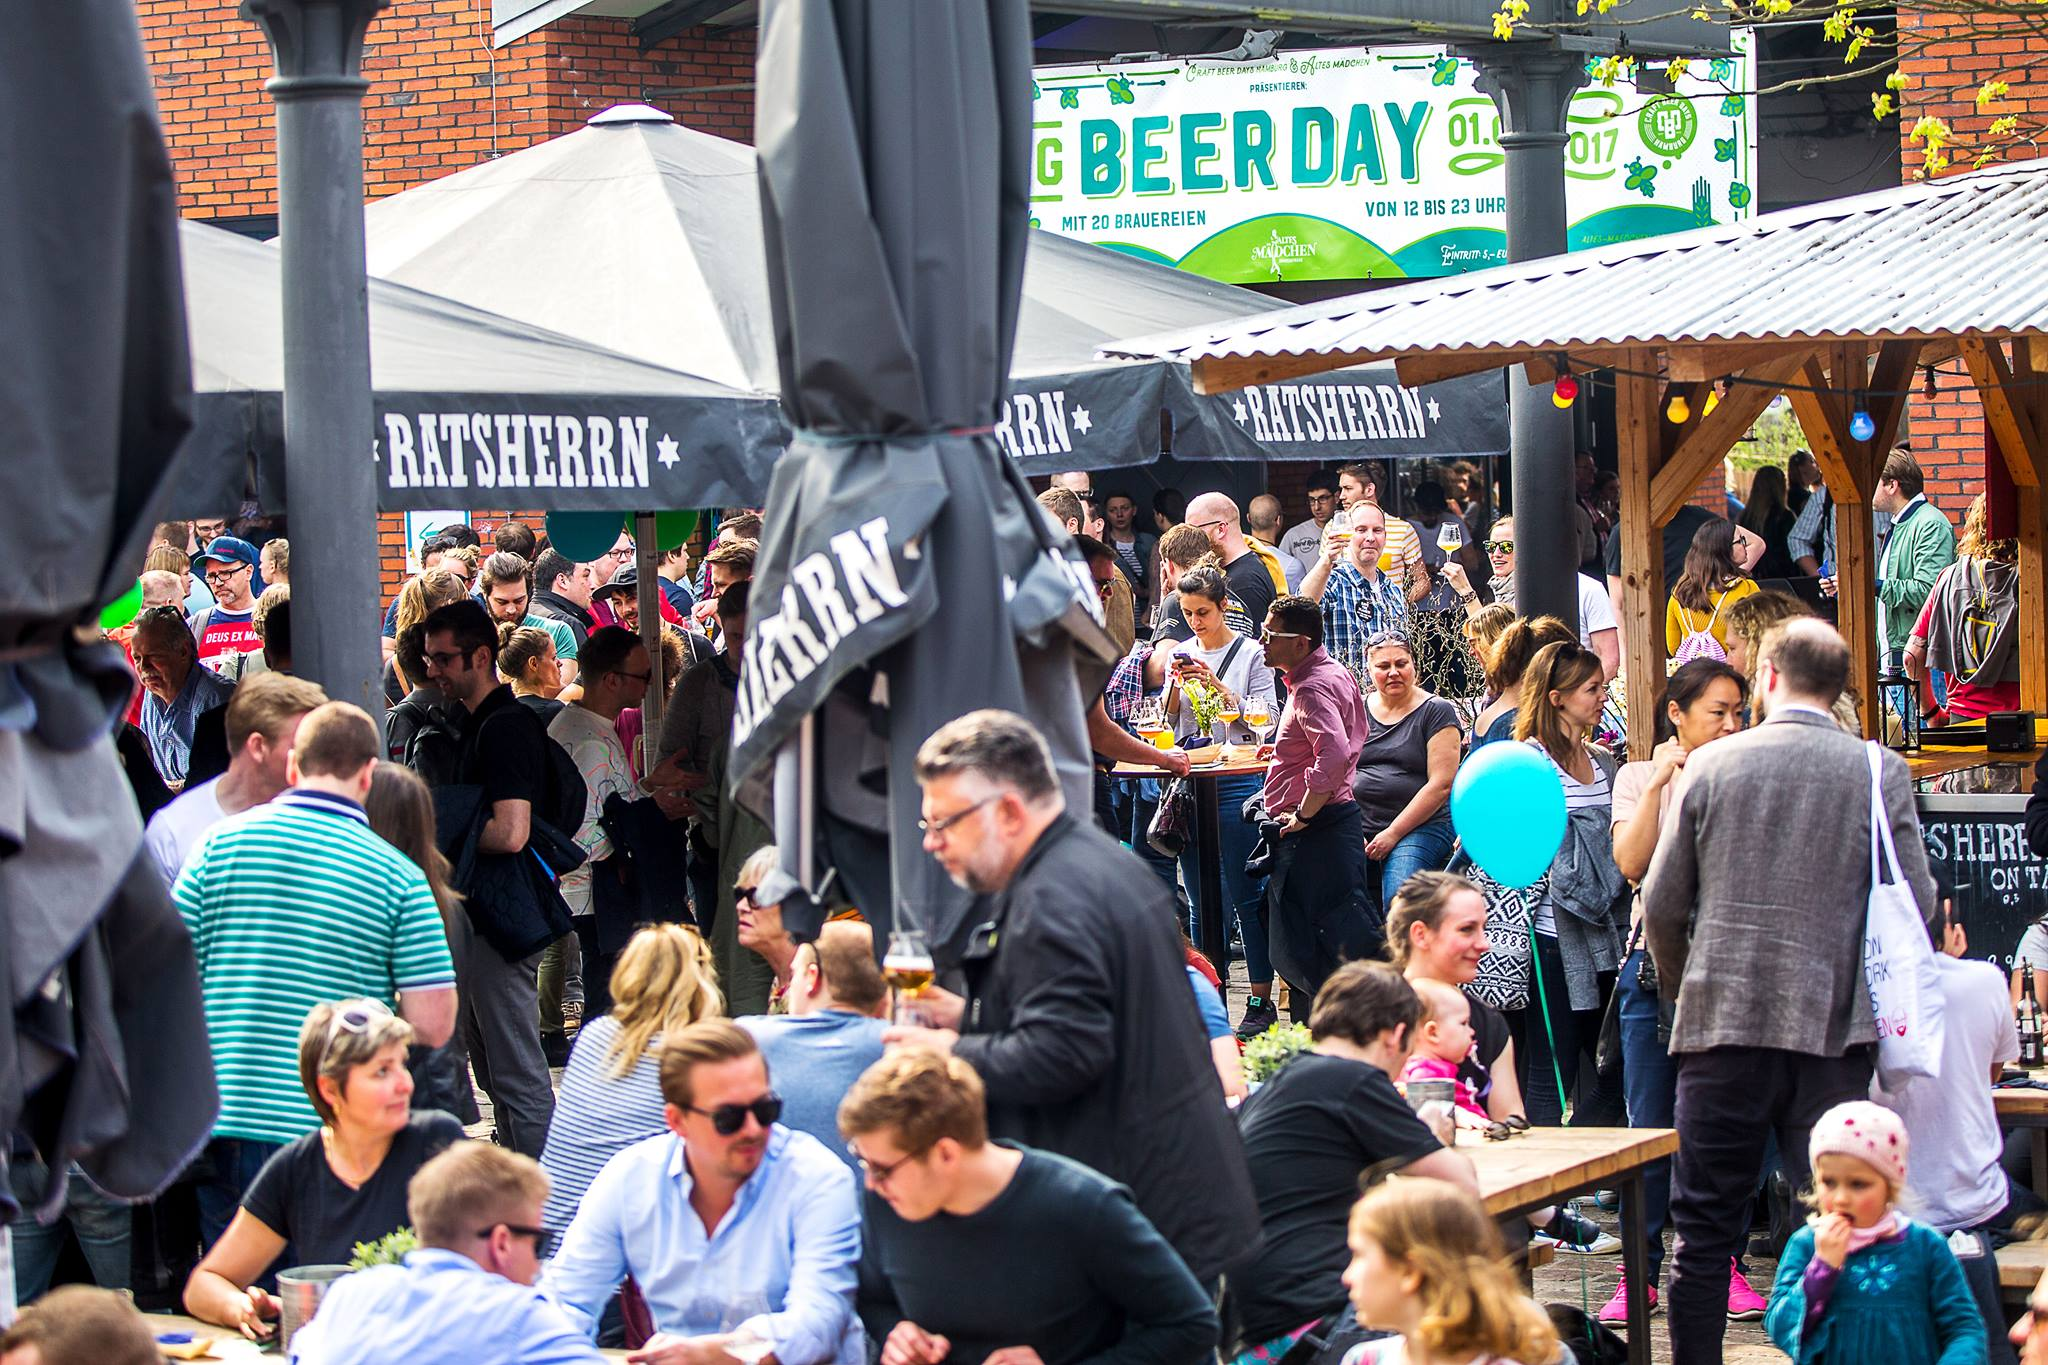 Spring Beer Day 2019 (Hamburg) © www.altes-maedchen.com